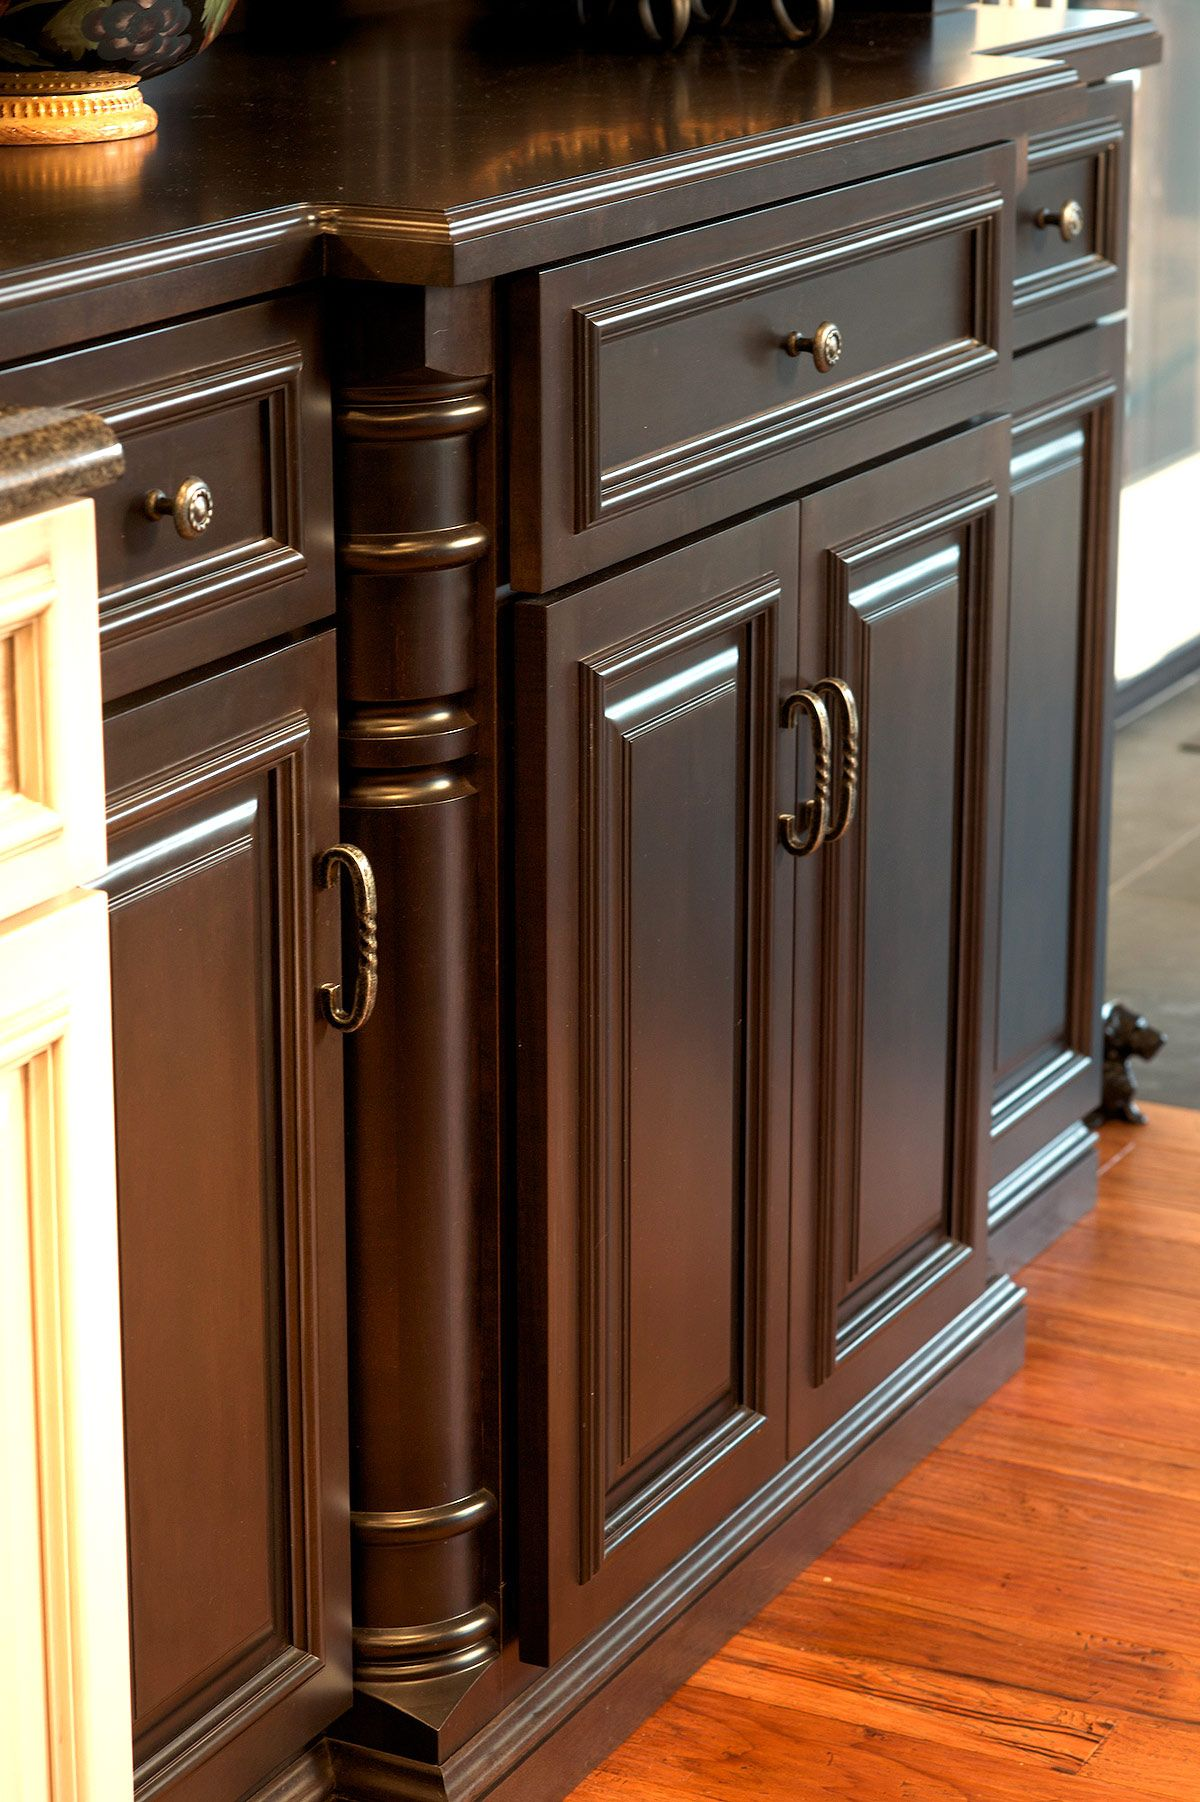 Amish Made Kitchen Cabinets By Mullet Cabinet In Millersburg Ohio Best Kitchen Cabinets Diy Kitchen Cabinets Makeover Clean Kitchen Cabinets